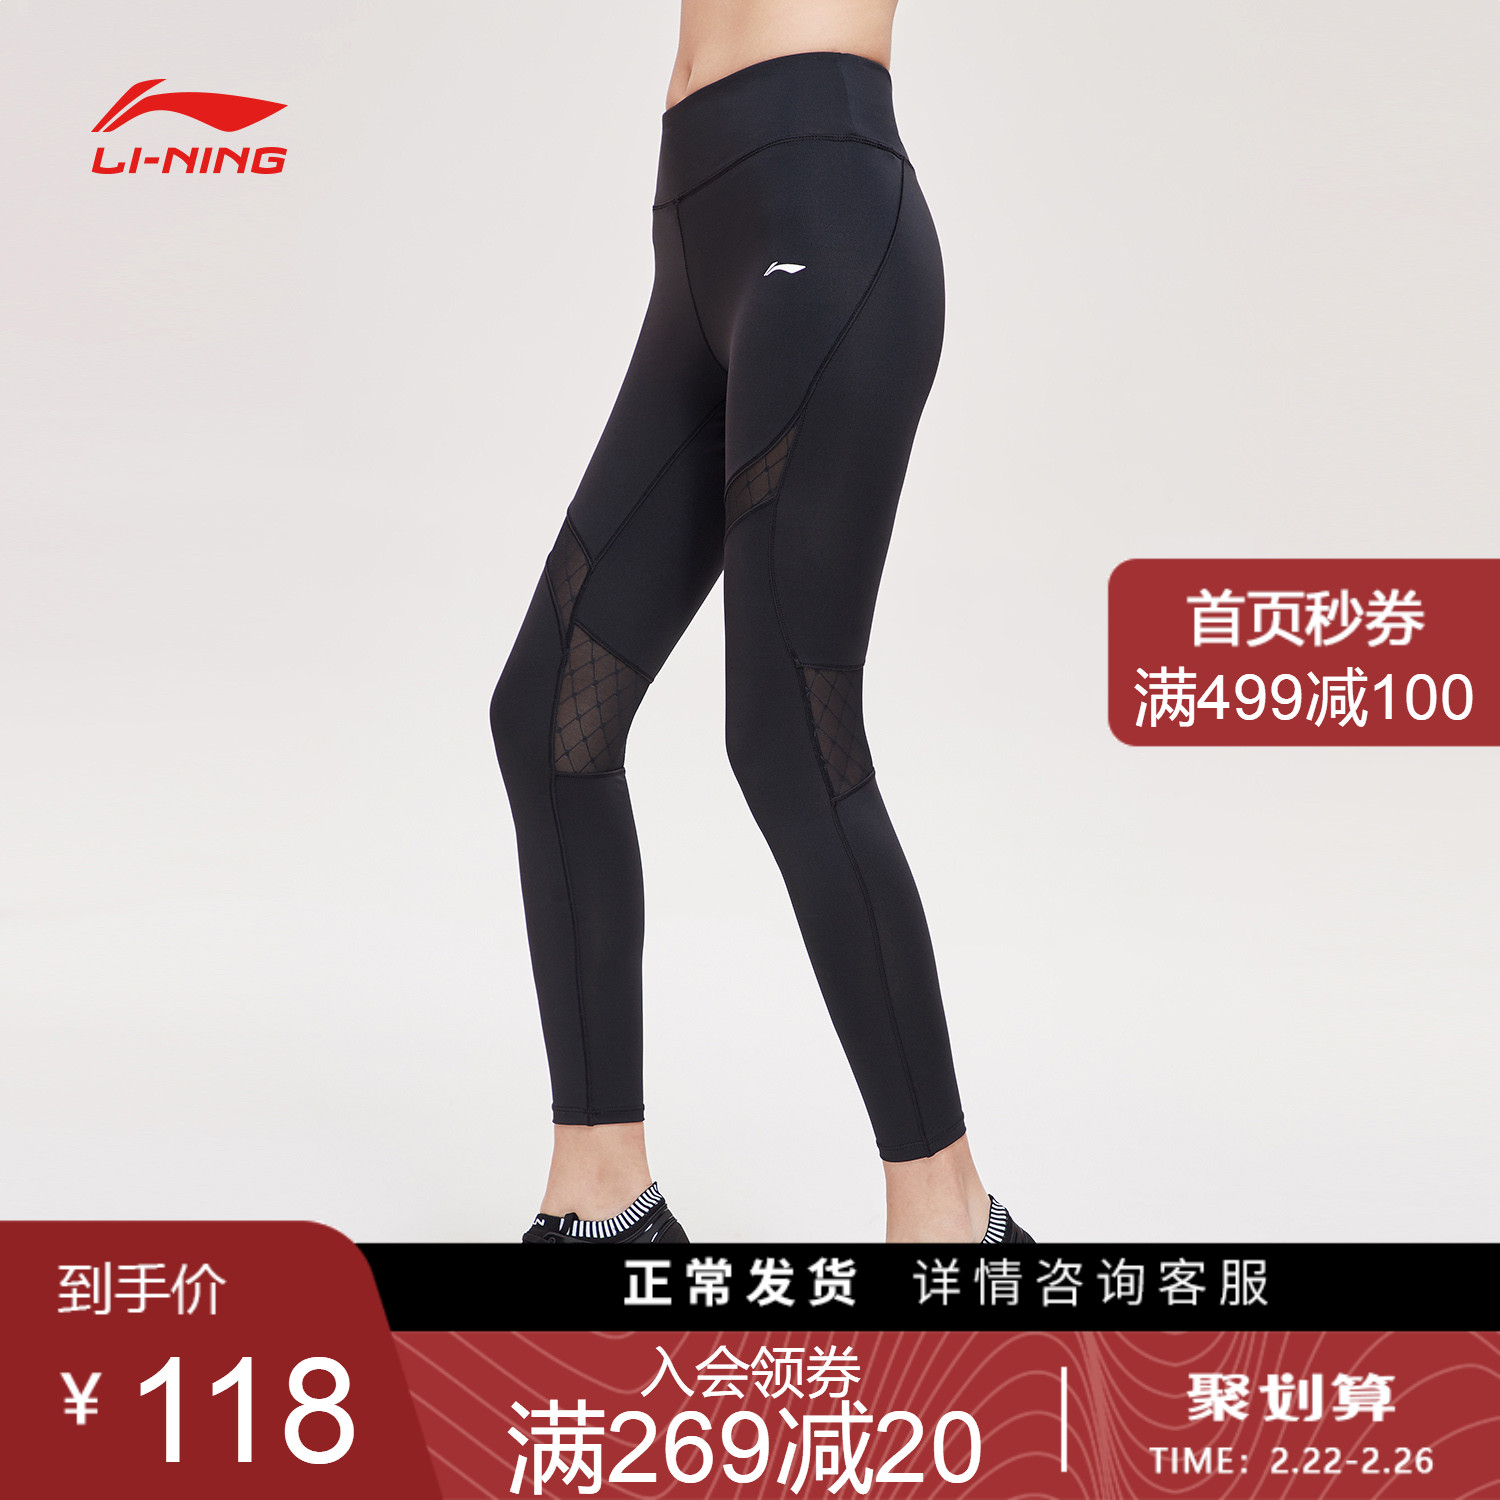 Li Ning sports pants women's training series summer Leggings training pants tight knit sports pants